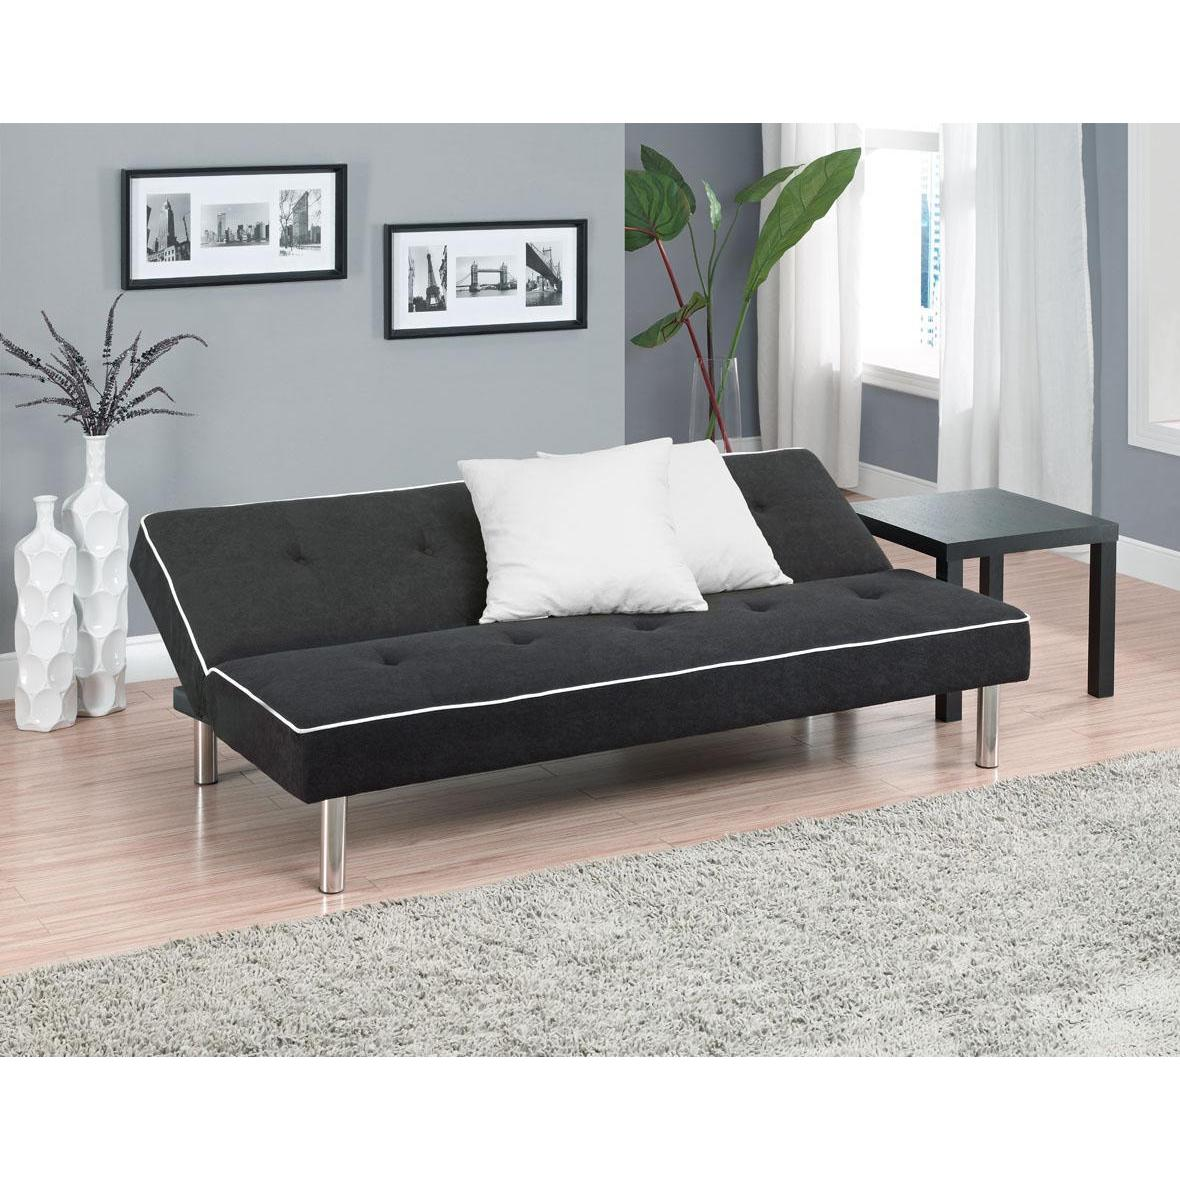 Dhp Charcoal Oxford Futon Free Shipping Today Com 10302381